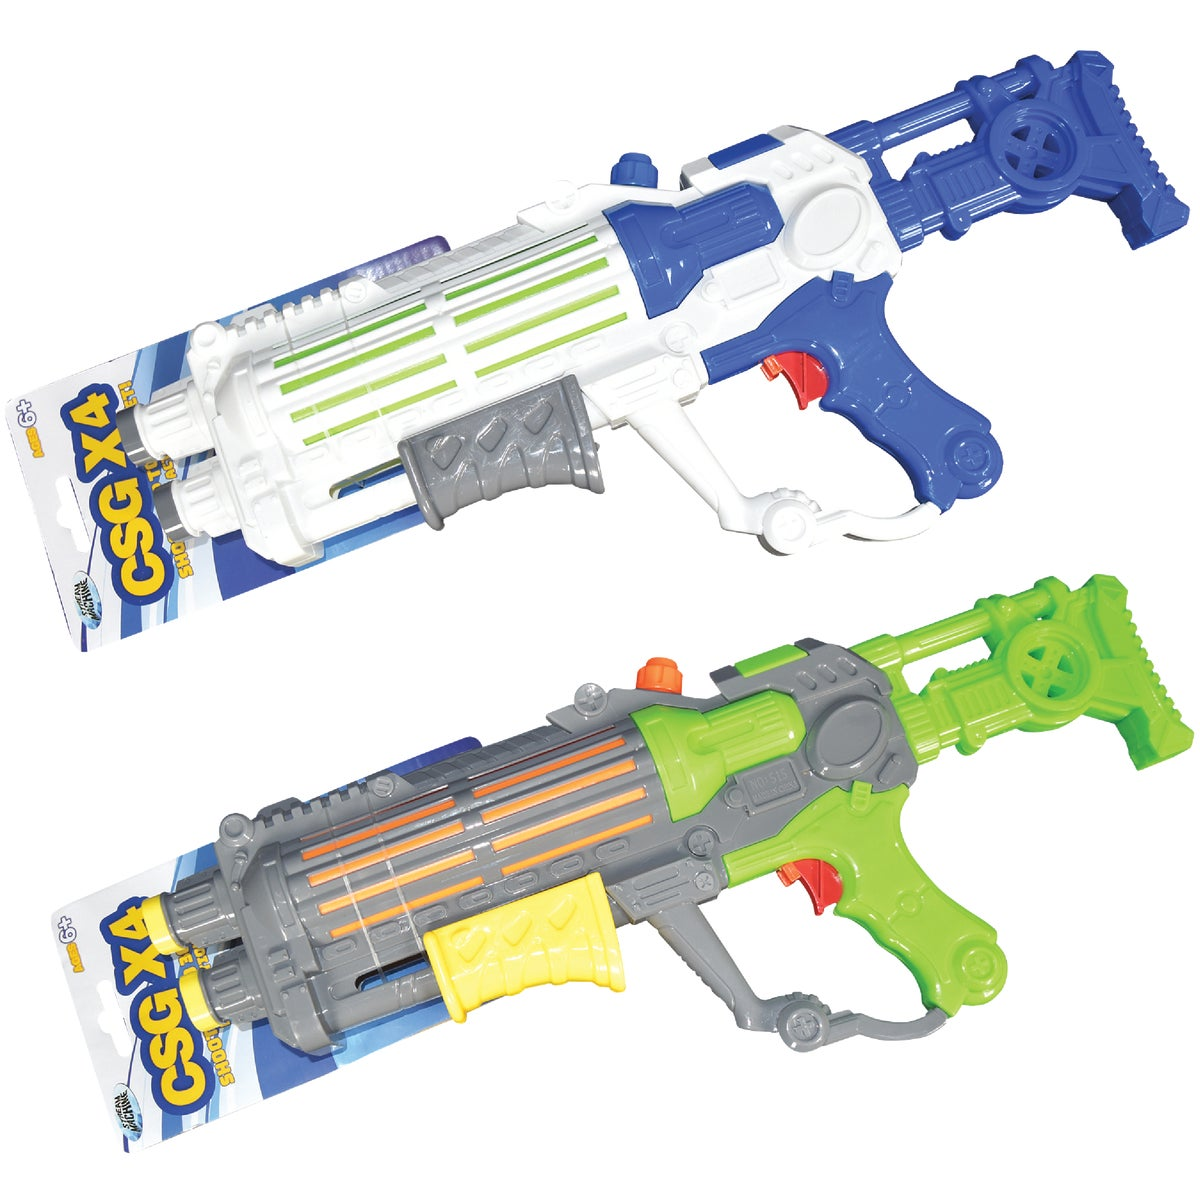 CSG X4 MED WATER GUN - 81003 by Water Sports Llc